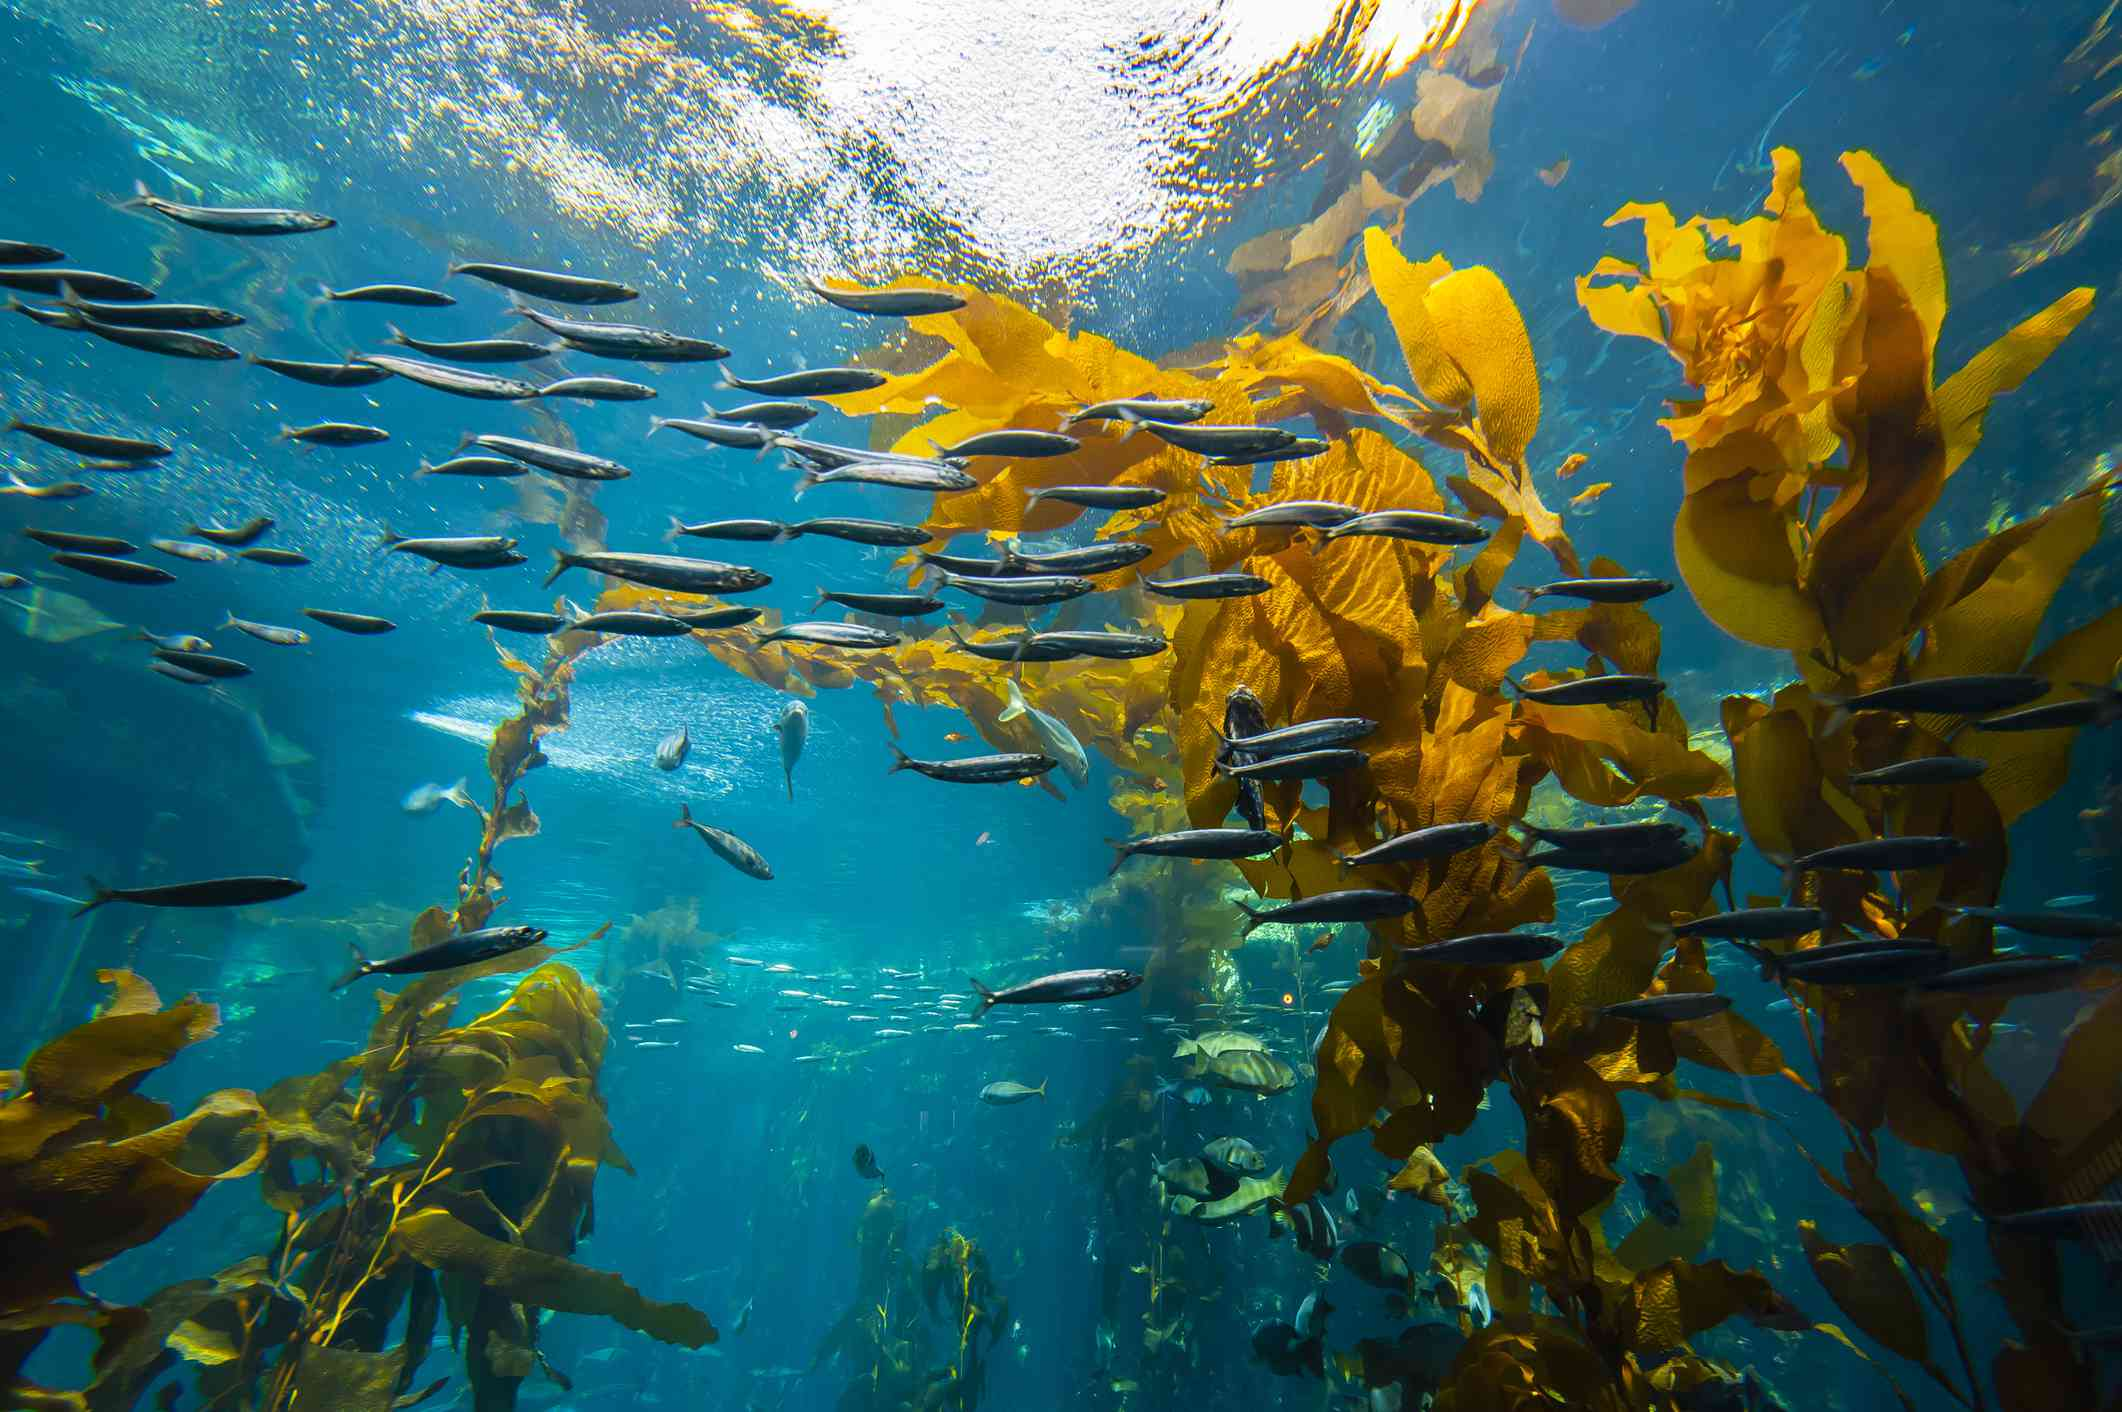 kelp forest surrounded by a school of small black fish near the water's surface at Monterey Bay Aquarium